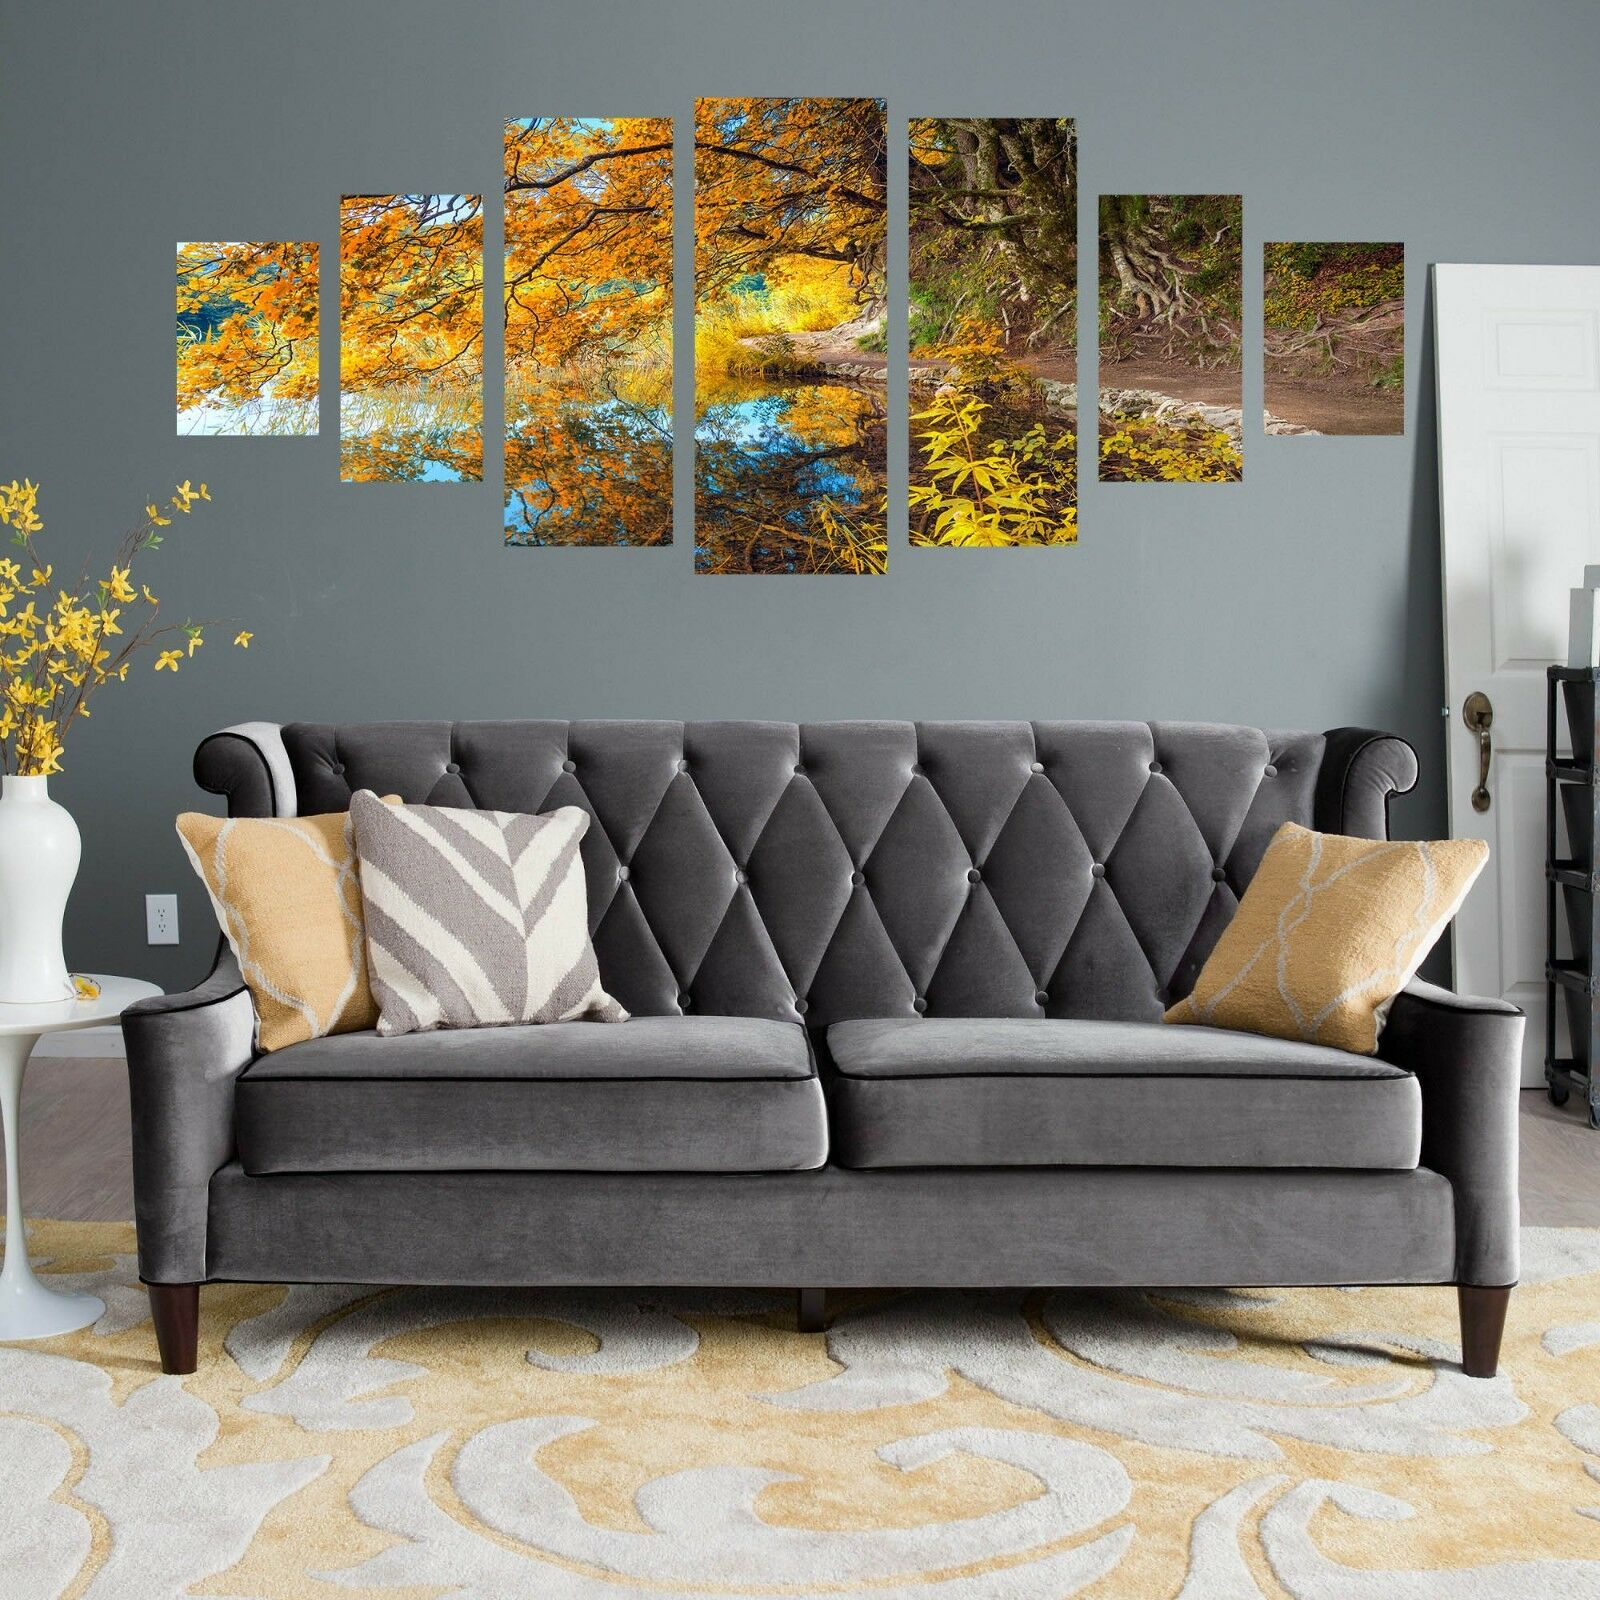 3D River Fall Tree Leaf 123 Unframed Drucken Wand Papier Deco Innen AJ Summer